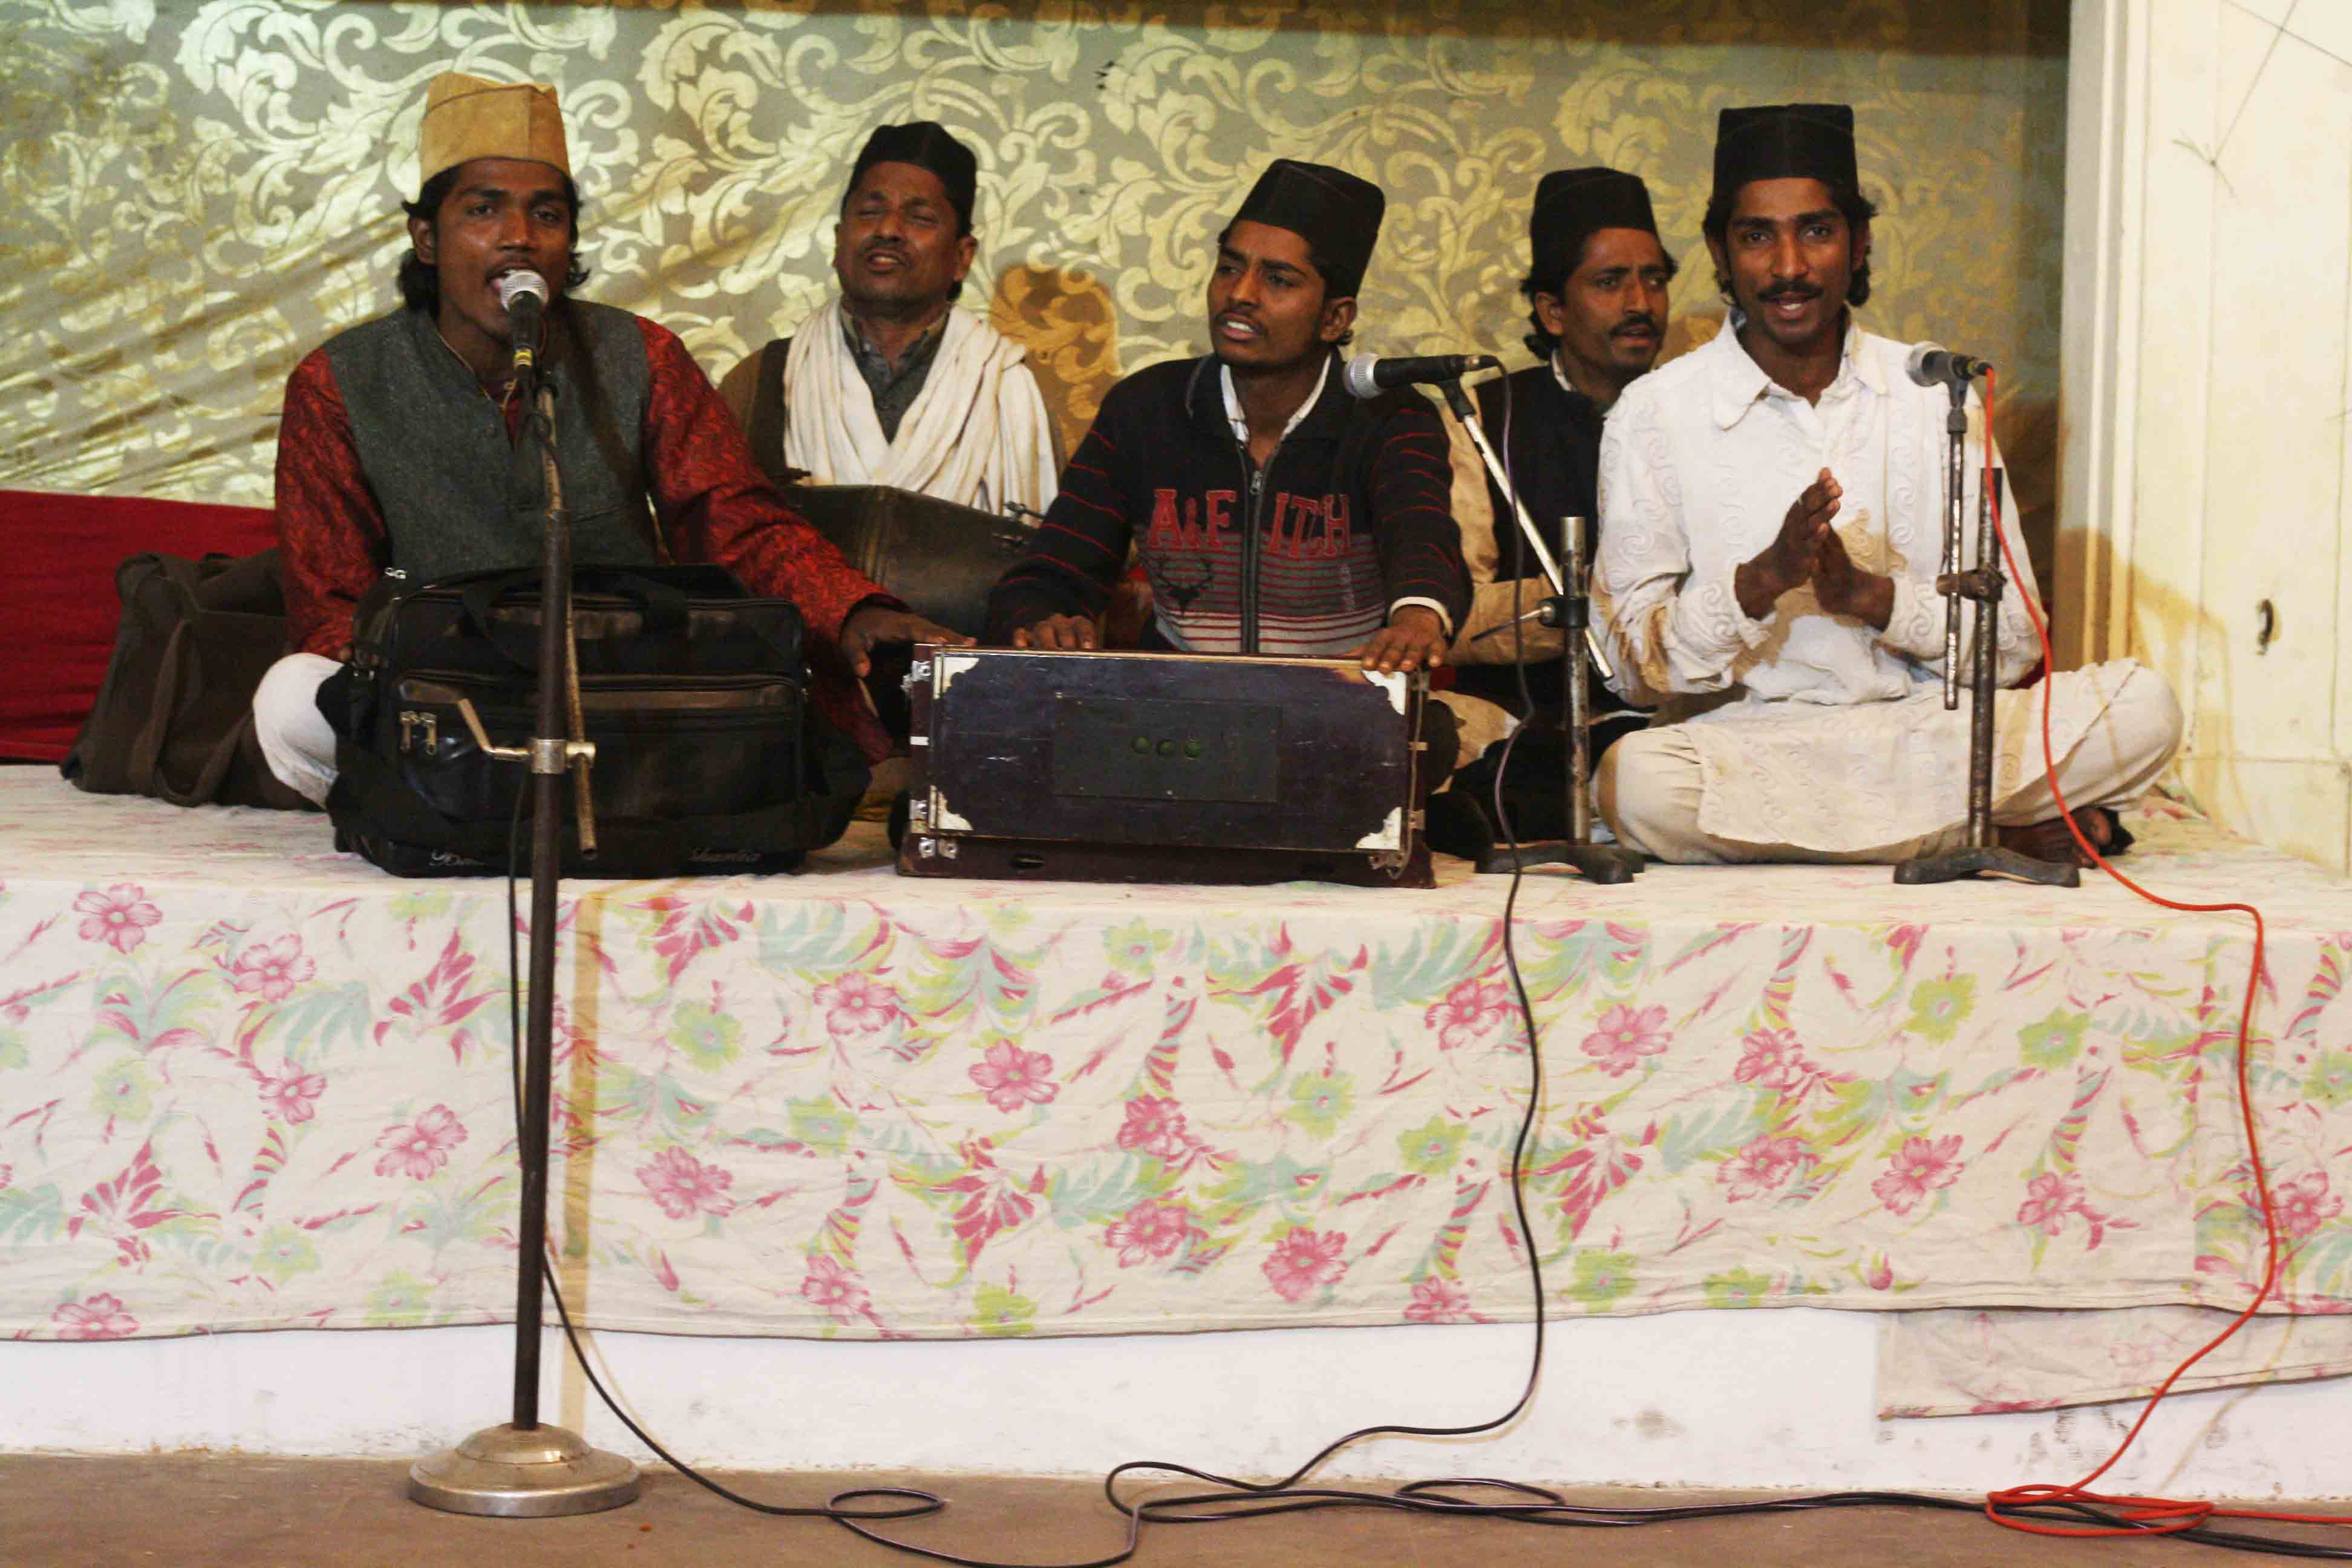 City Moment – Concert Hall Audience, Urs Mahal